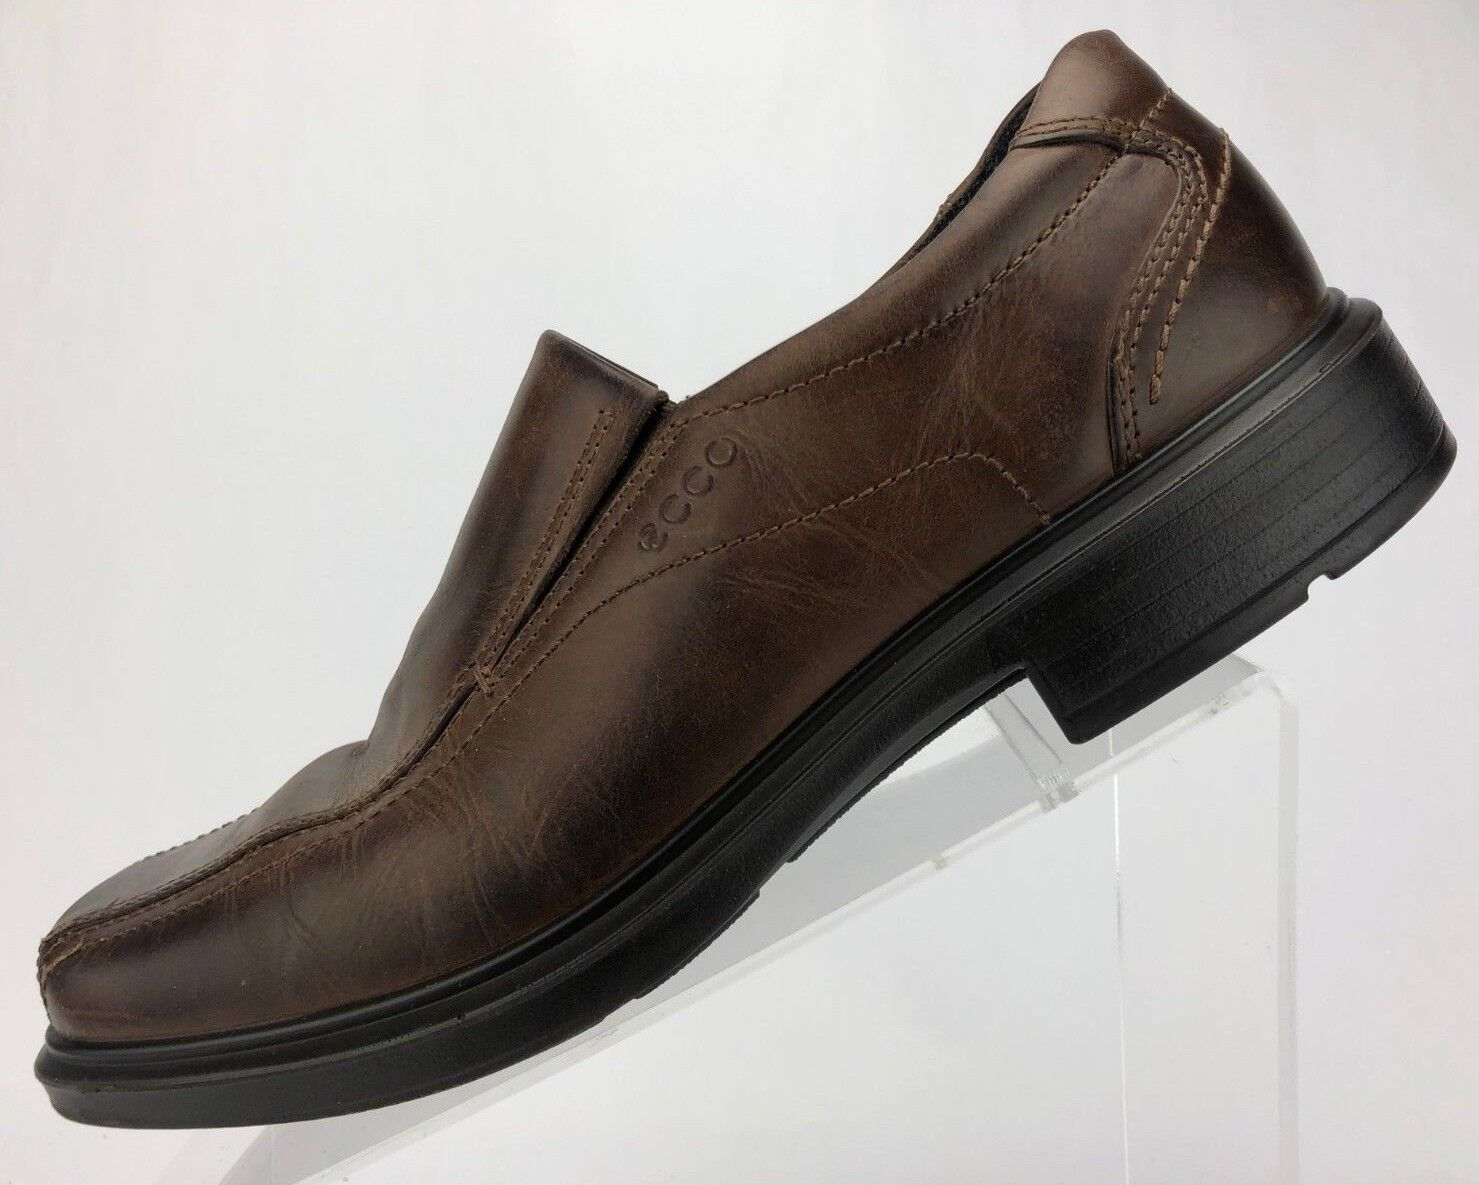 Ecco Loafers - Brown Leather Dress Casual Cushion Comfort Men's Size 43 US 9 9.5